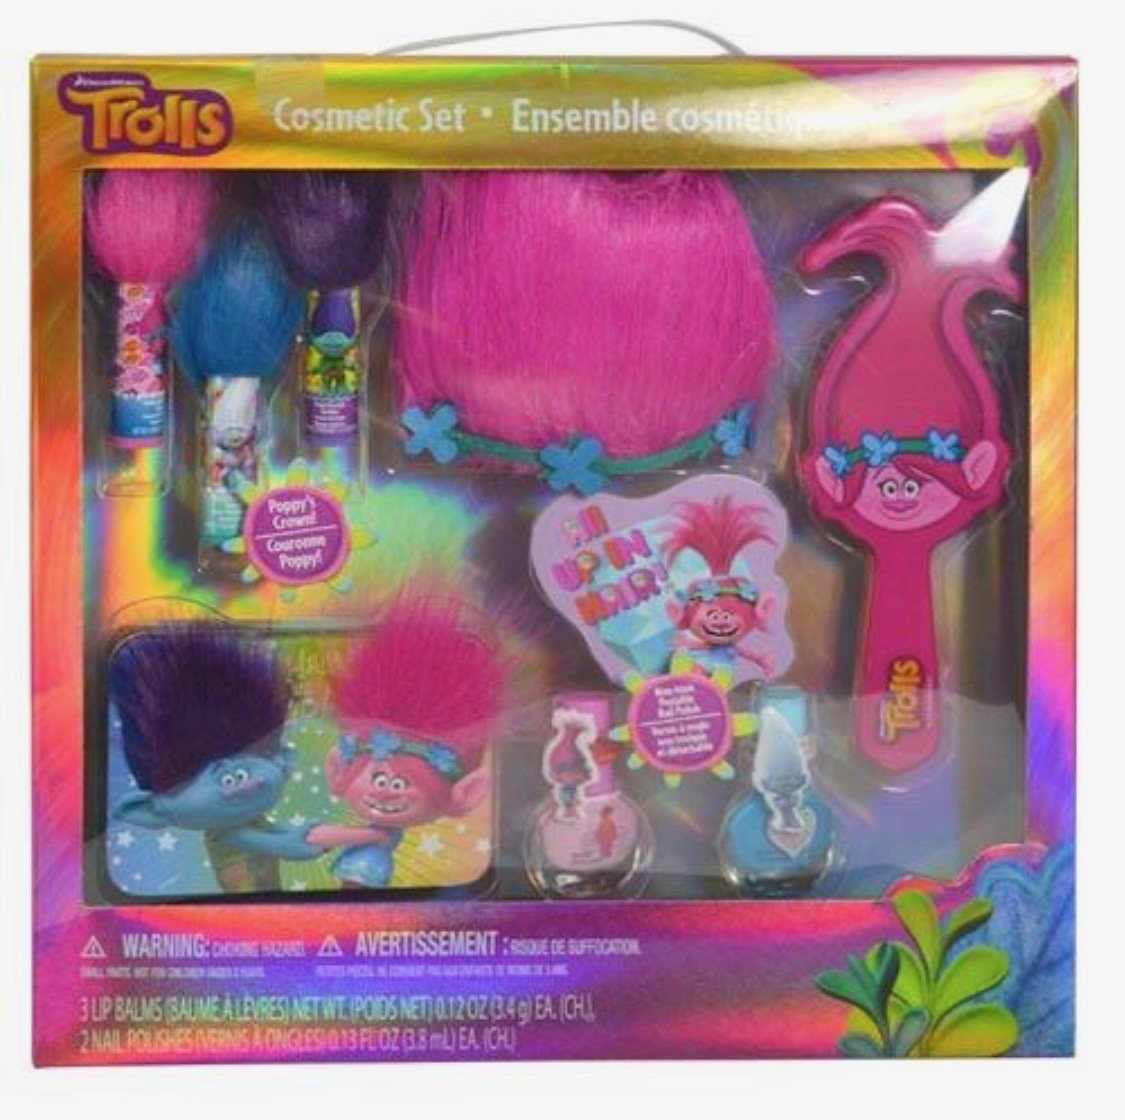 Trolls Complete Girls Hair & Cosmetics 10 Pieces Gift set In a Box | With Lip Balms, Nail Polishes & Accessories